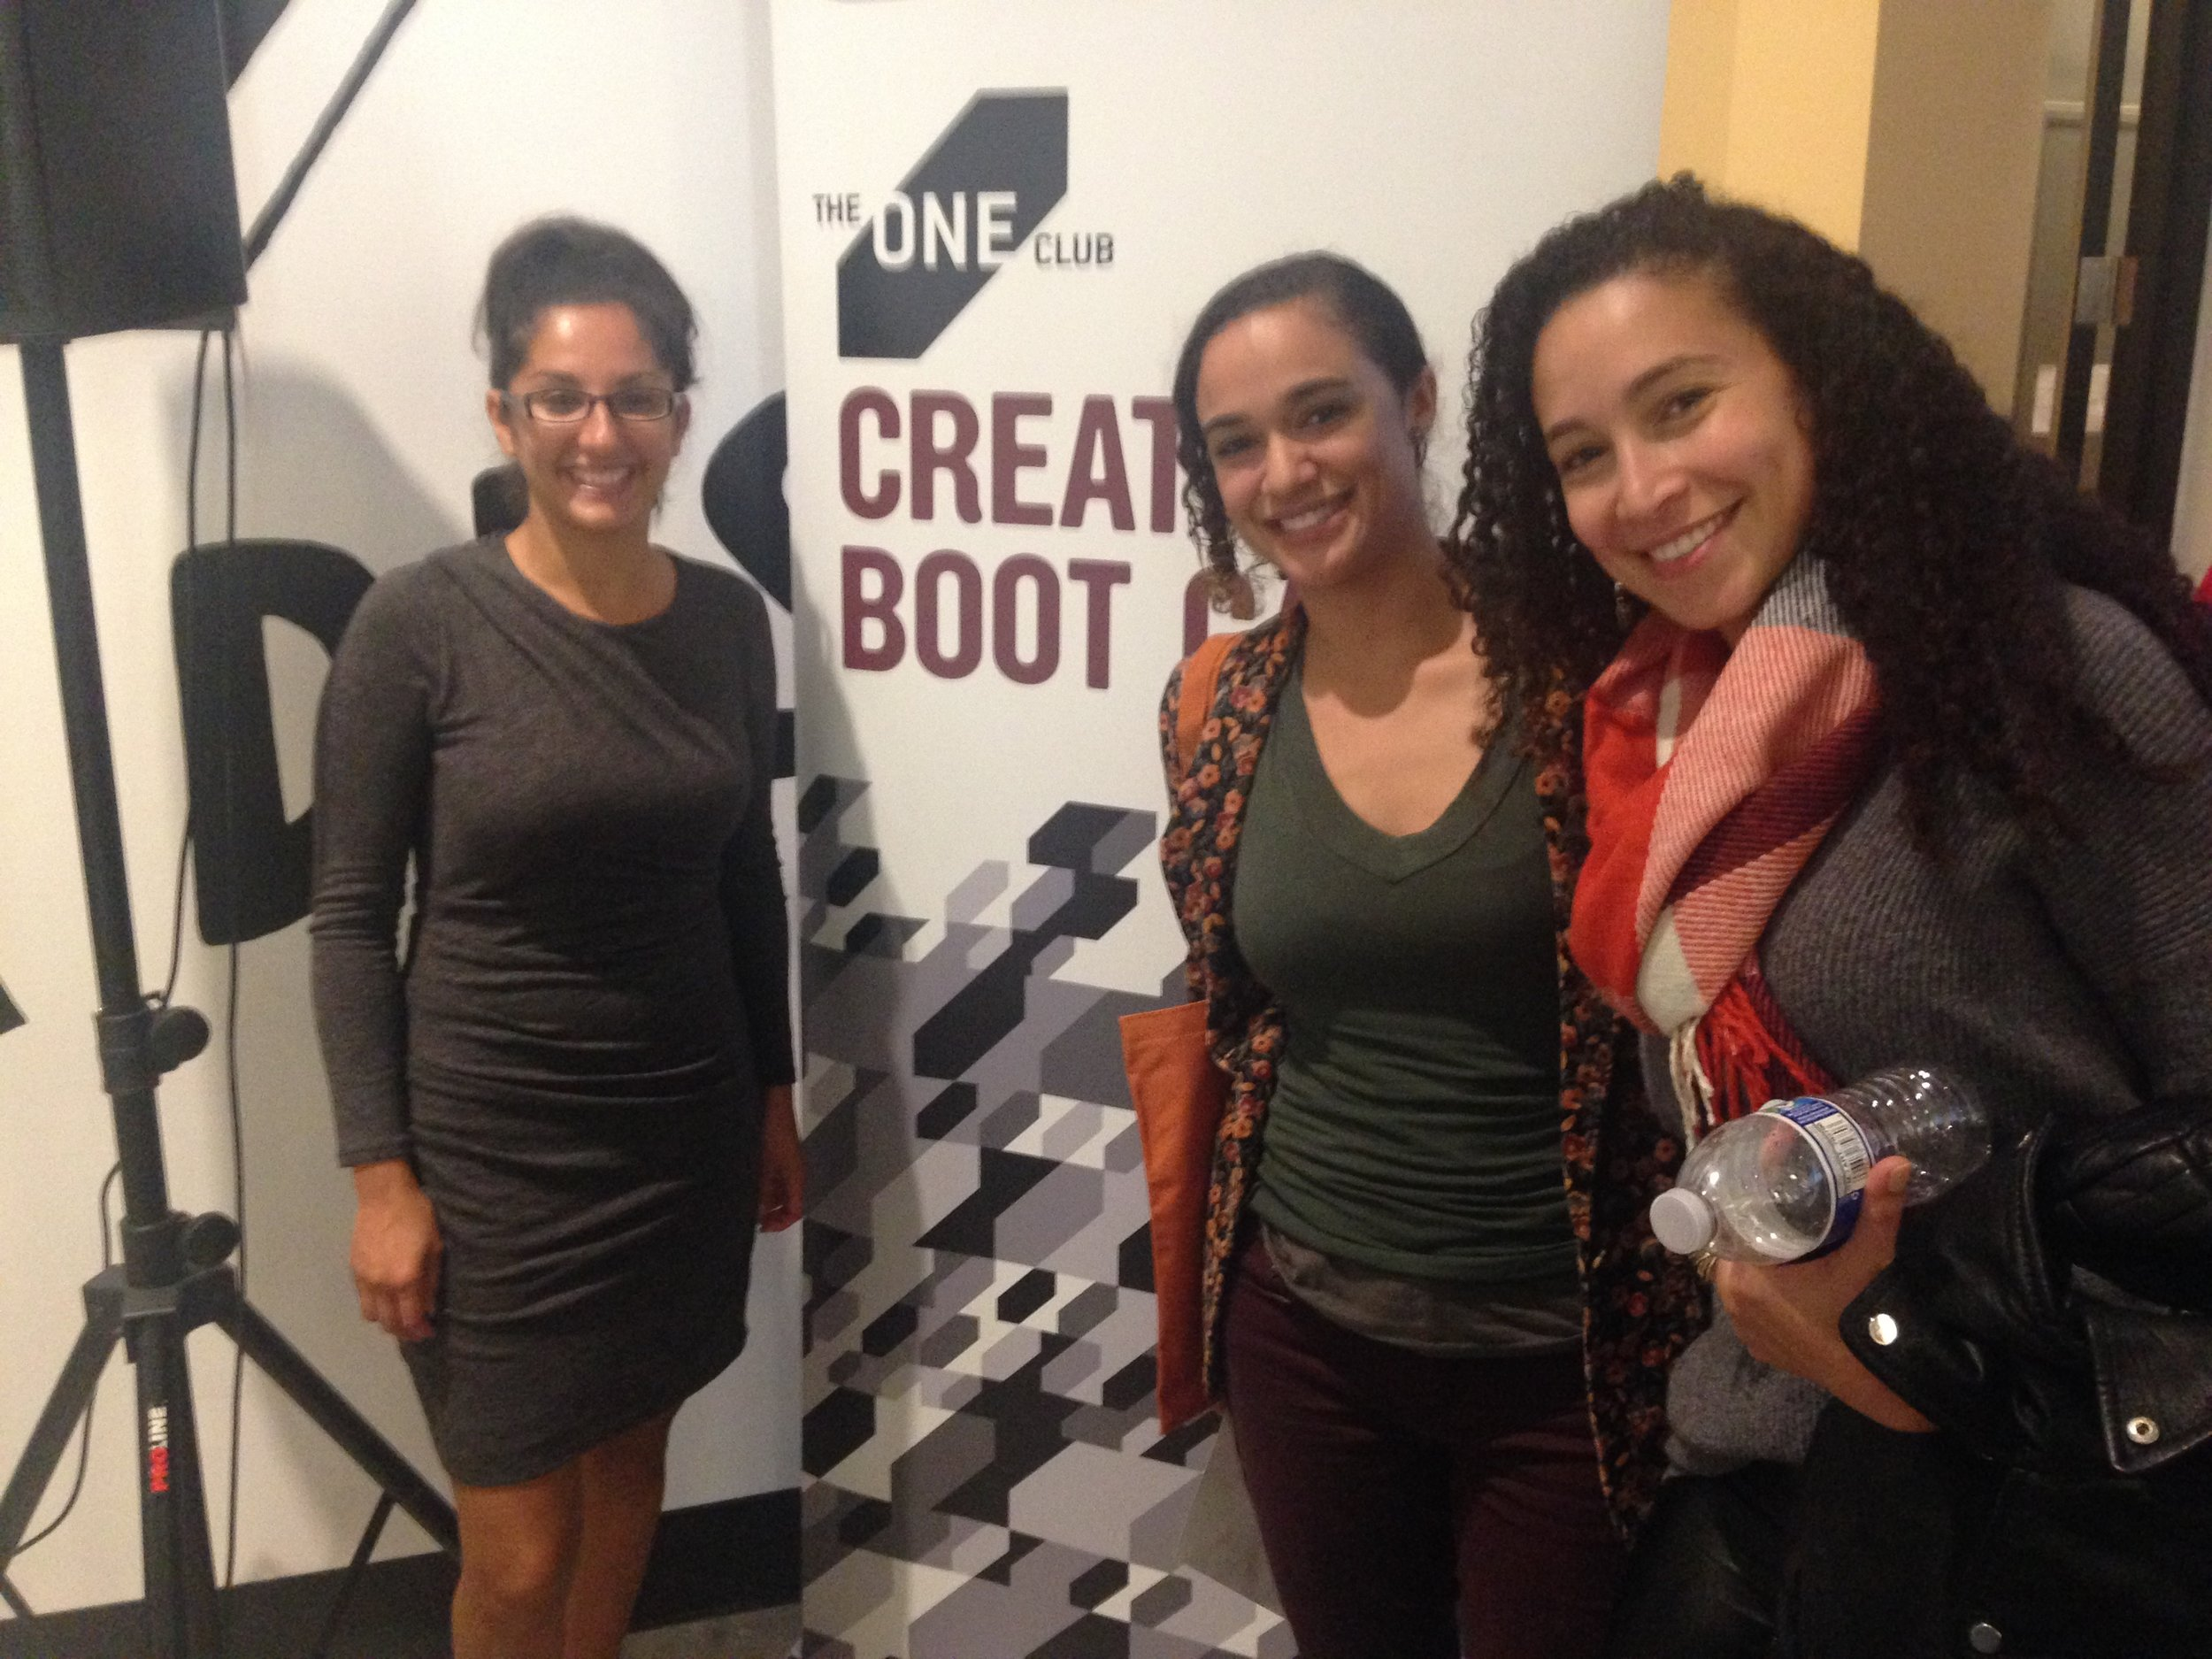 Yasmeen and Oriana with Leila Moussaoui, Art Director from Intel (right).